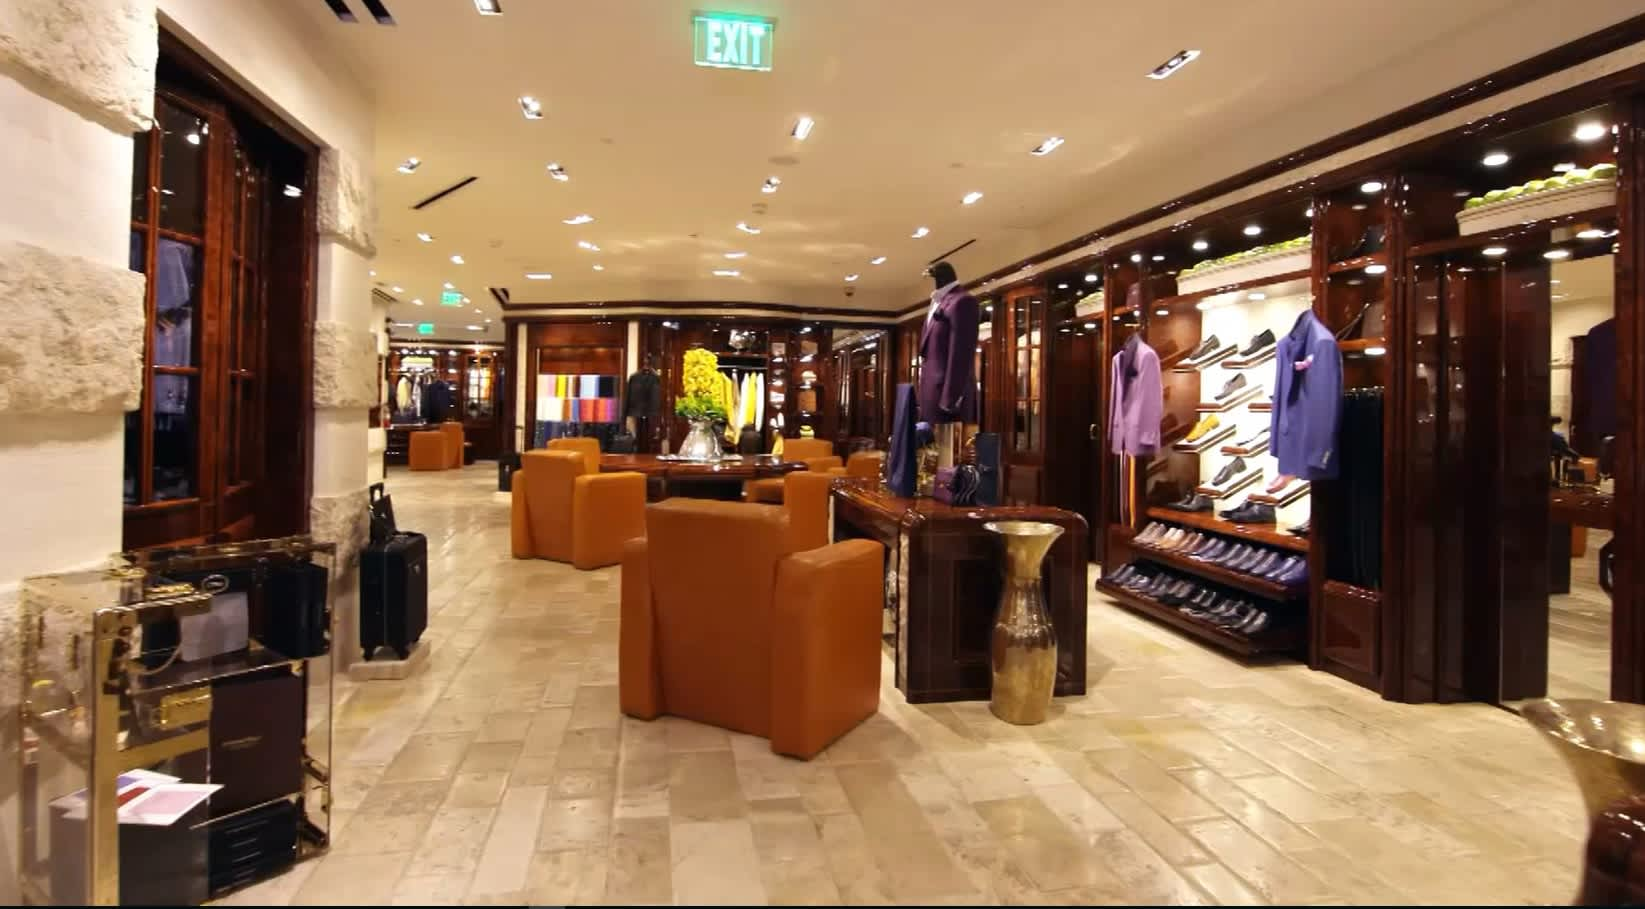 This is where some of the world's richest men shop for clothes